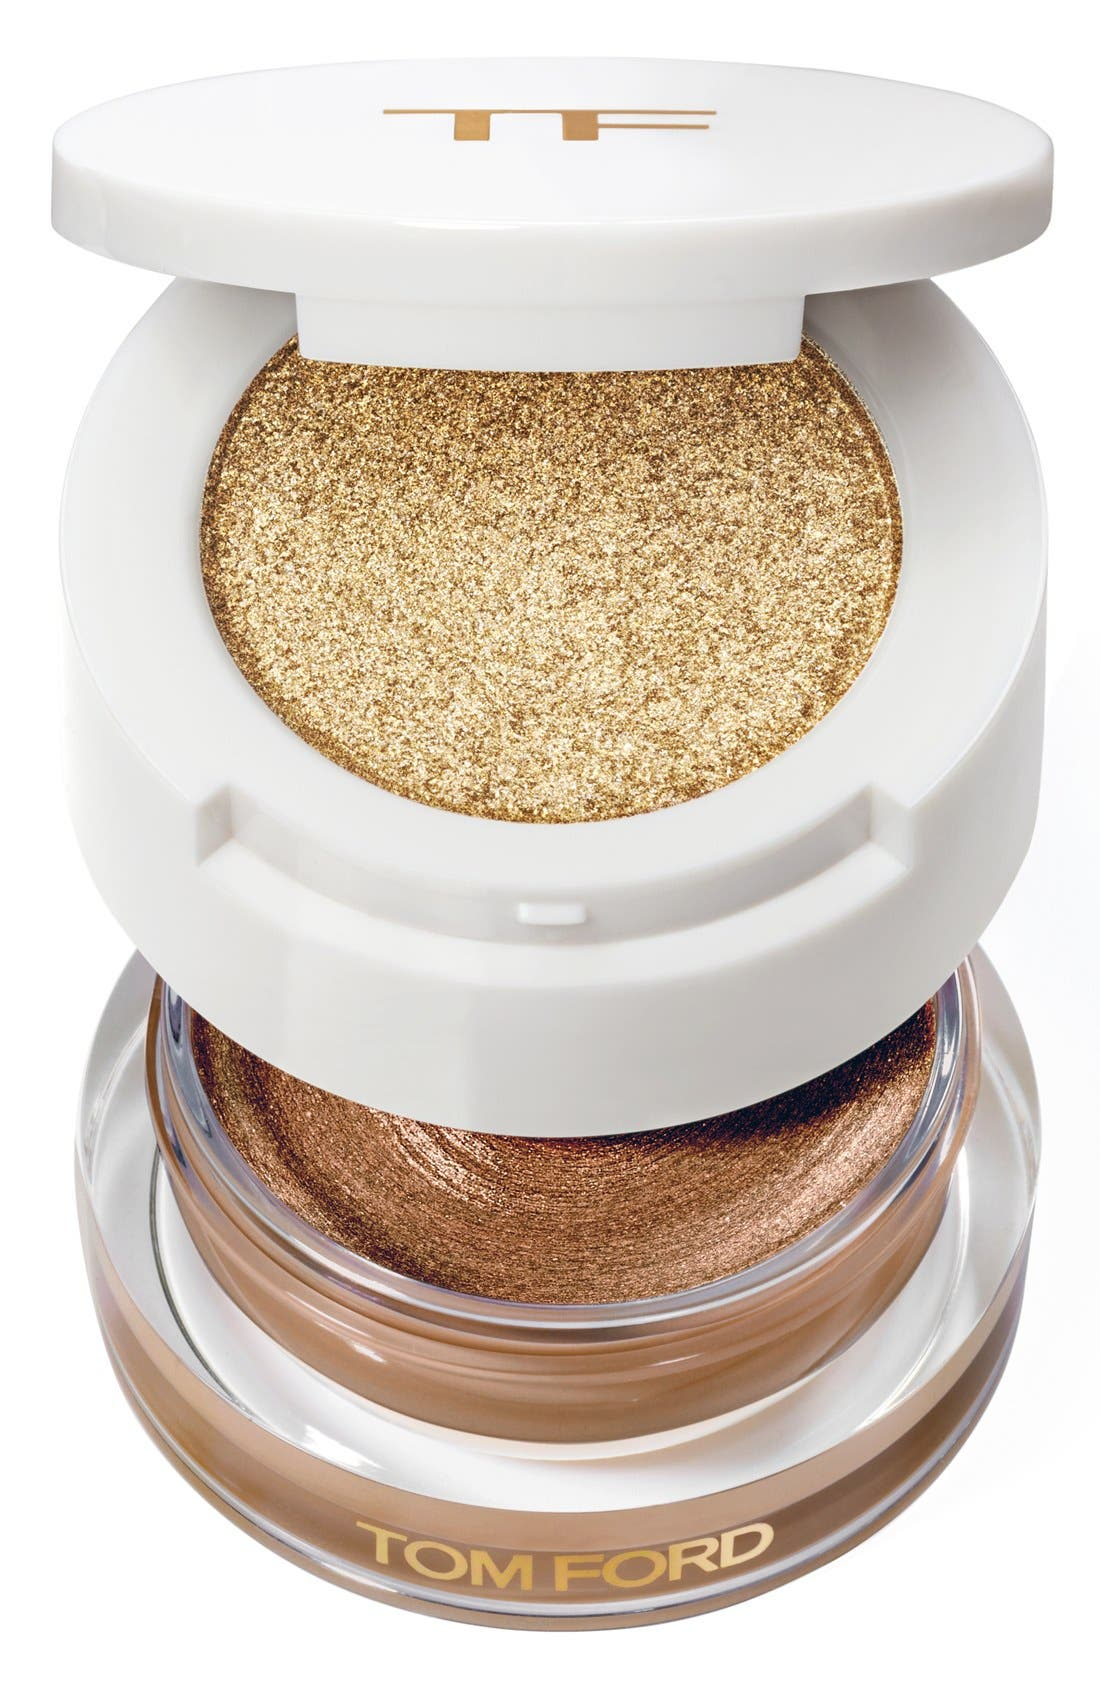 TOM FORD, Cream & Powder Eye Color Duo, Main thumbnail 1, color, NAKED BRONZE